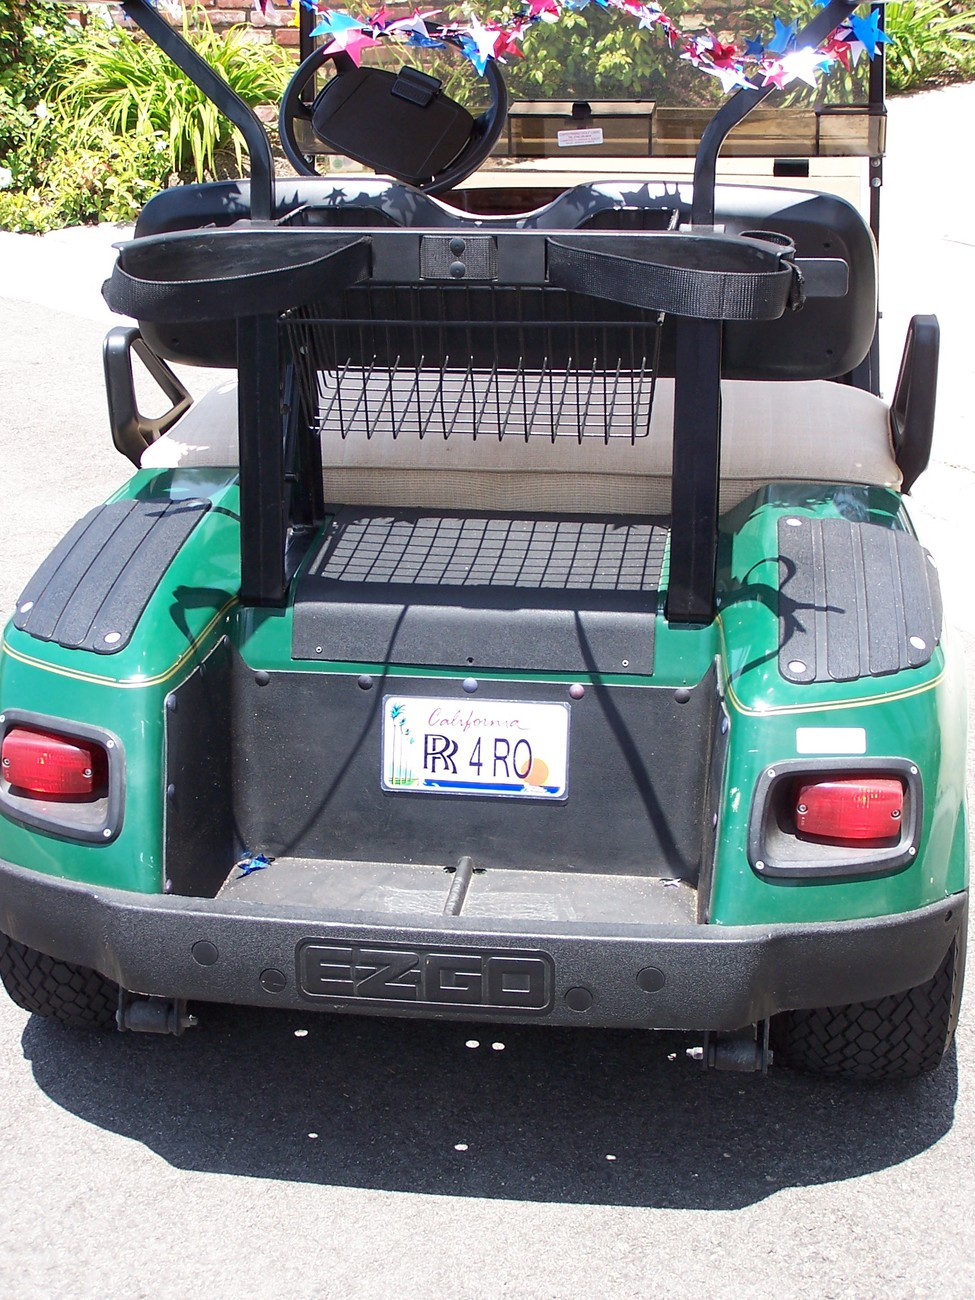 Custom Personalized Mississippi golf cart, mobility scooter license plate